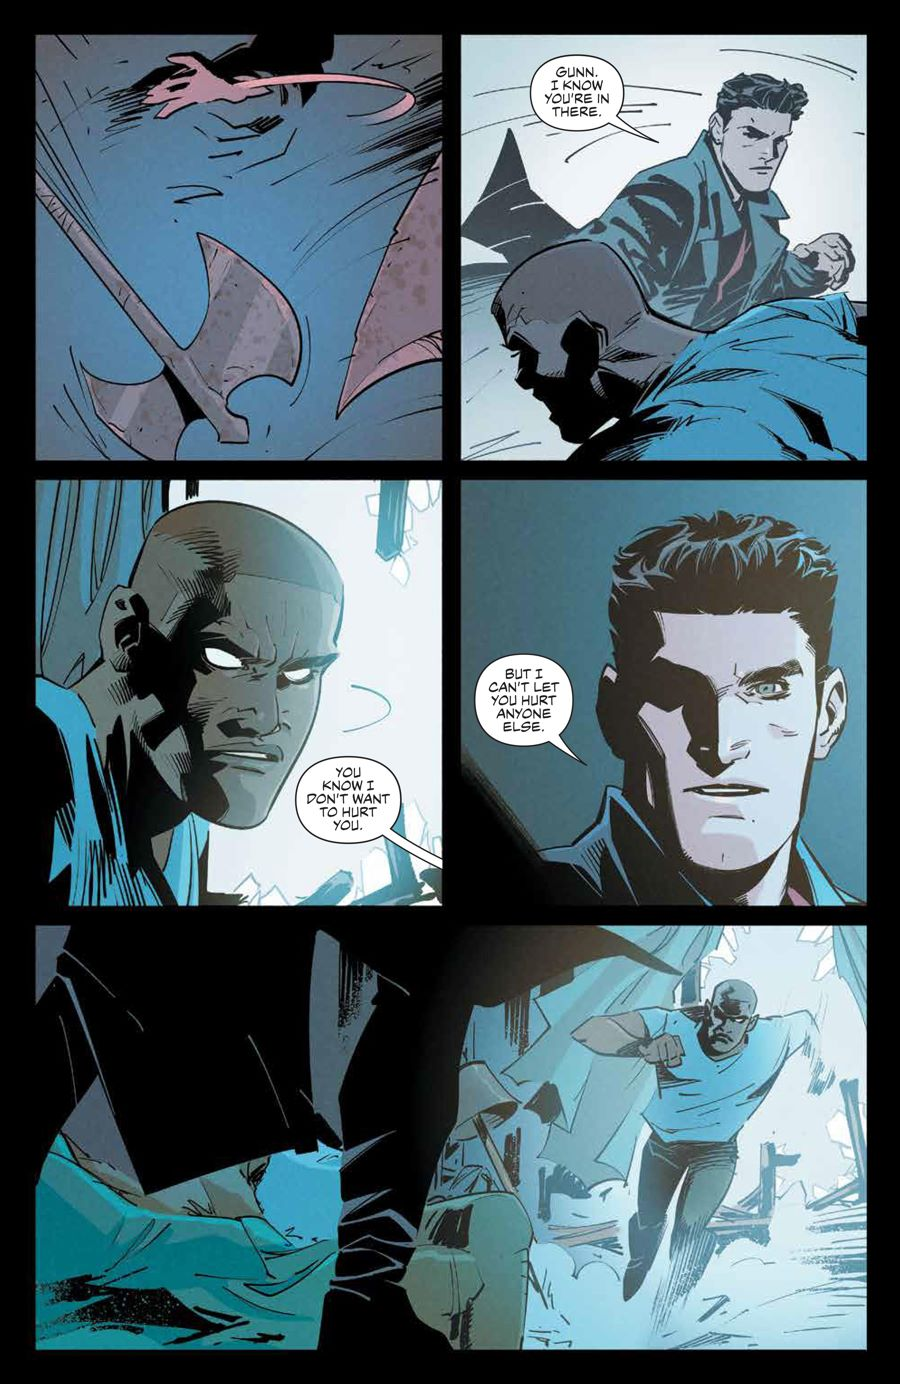 Angel_012_PRESS_5 ComicList Previews: ANGEL AND SPIKE #12